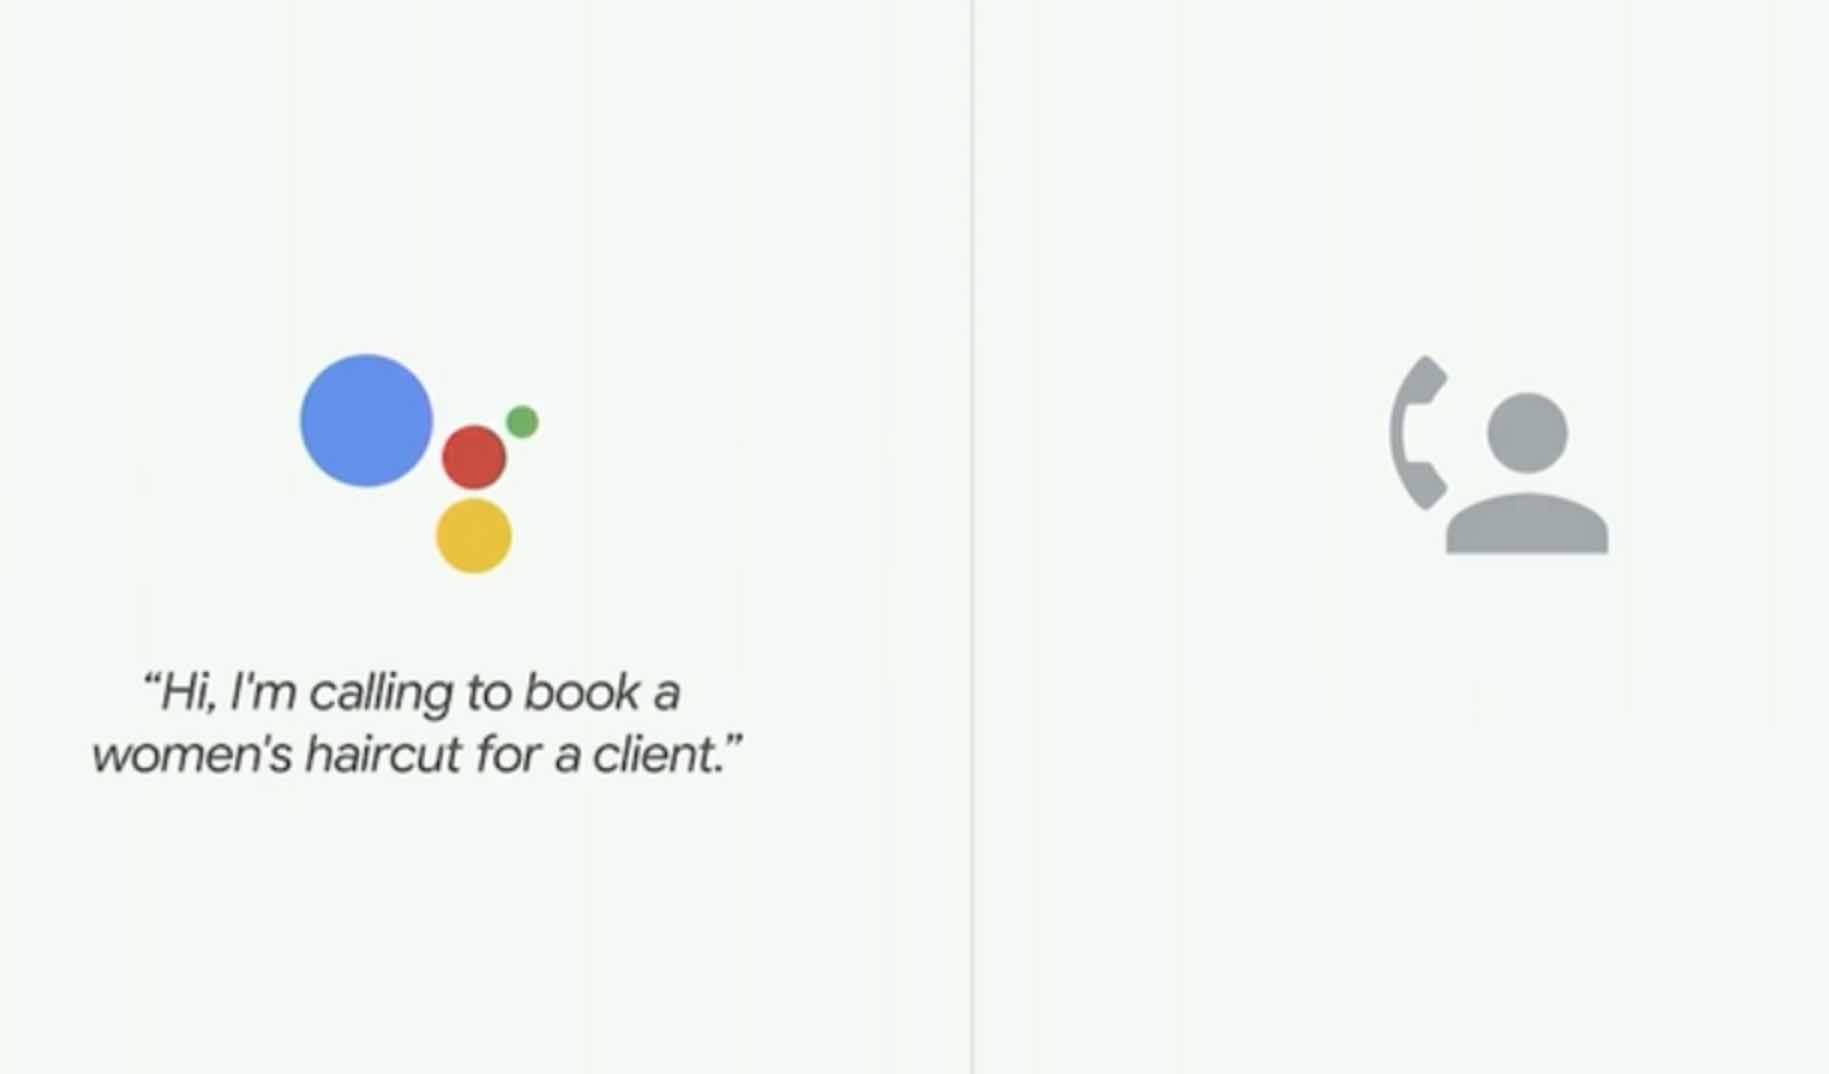 Google Duplex: An Artificial intelligence that talks like a man, is this ethical?